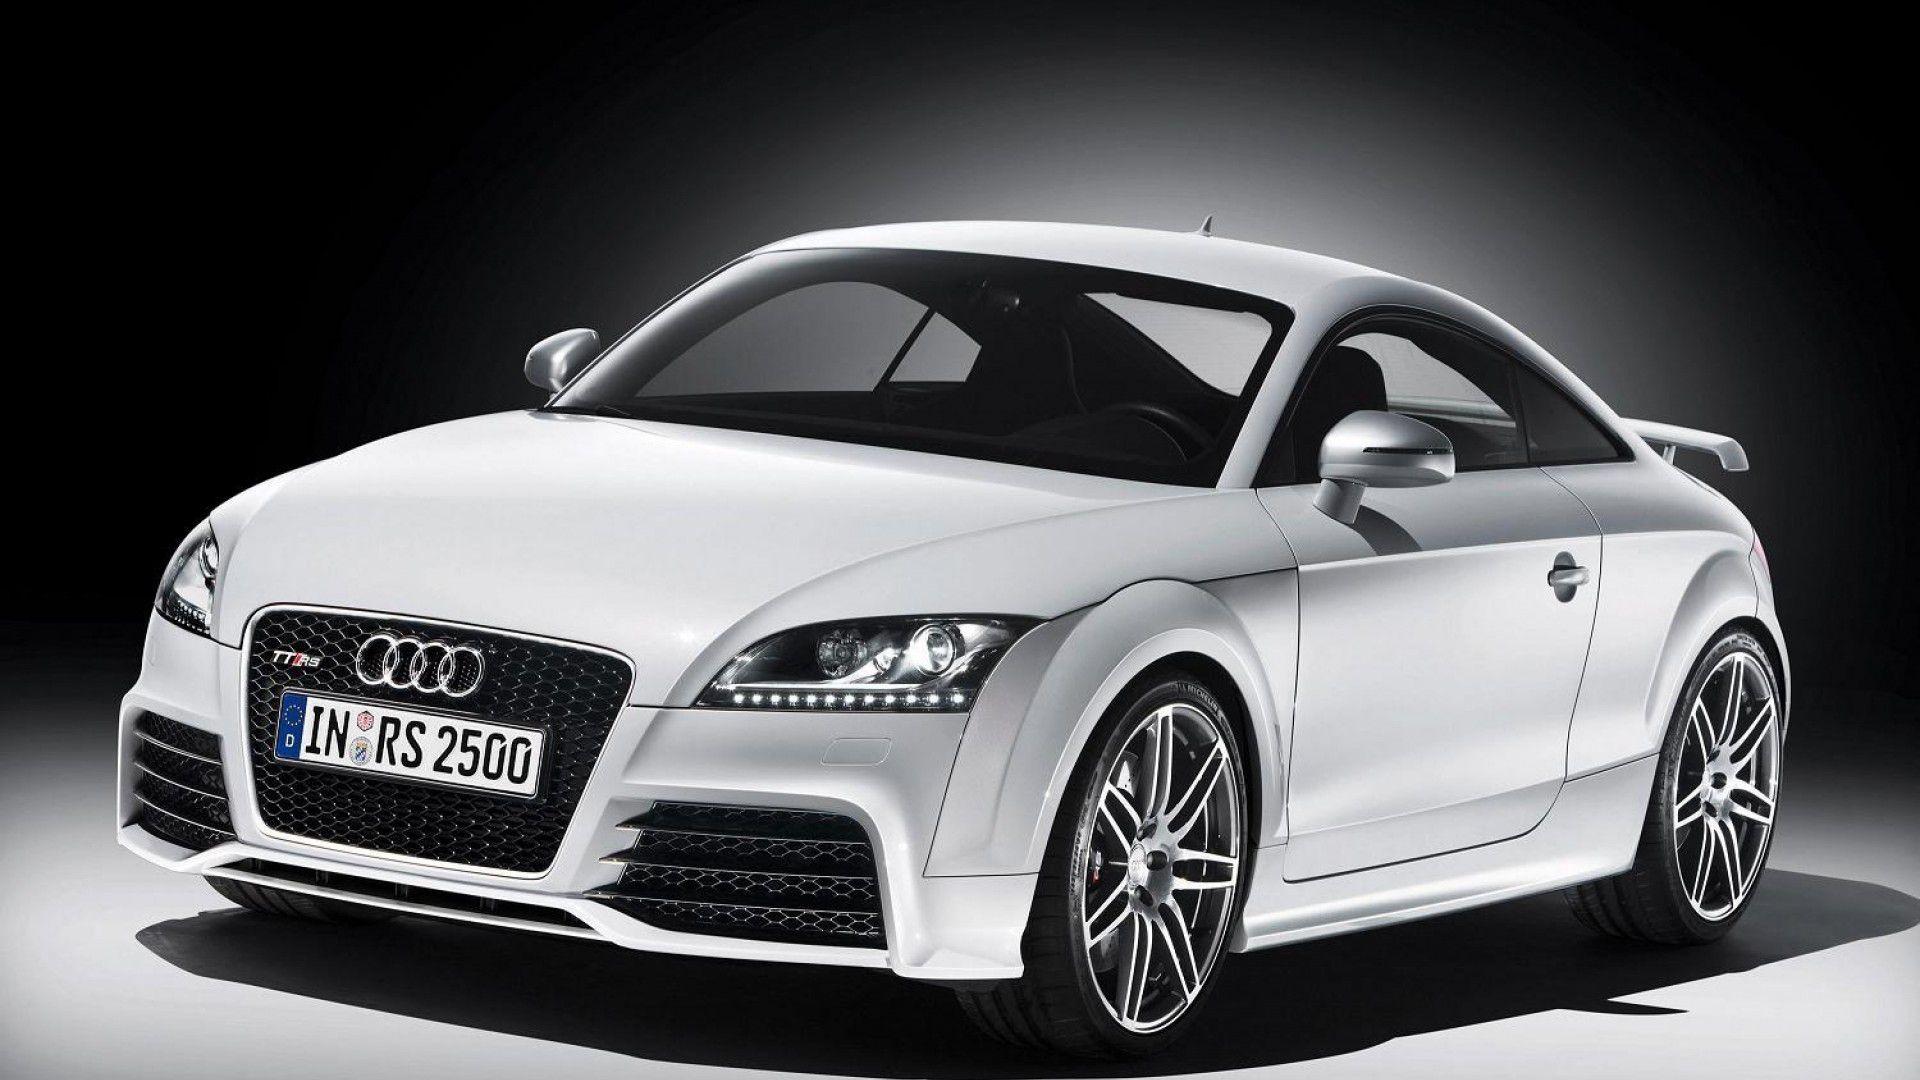 Audi TT Coupe (1998 to 2006)